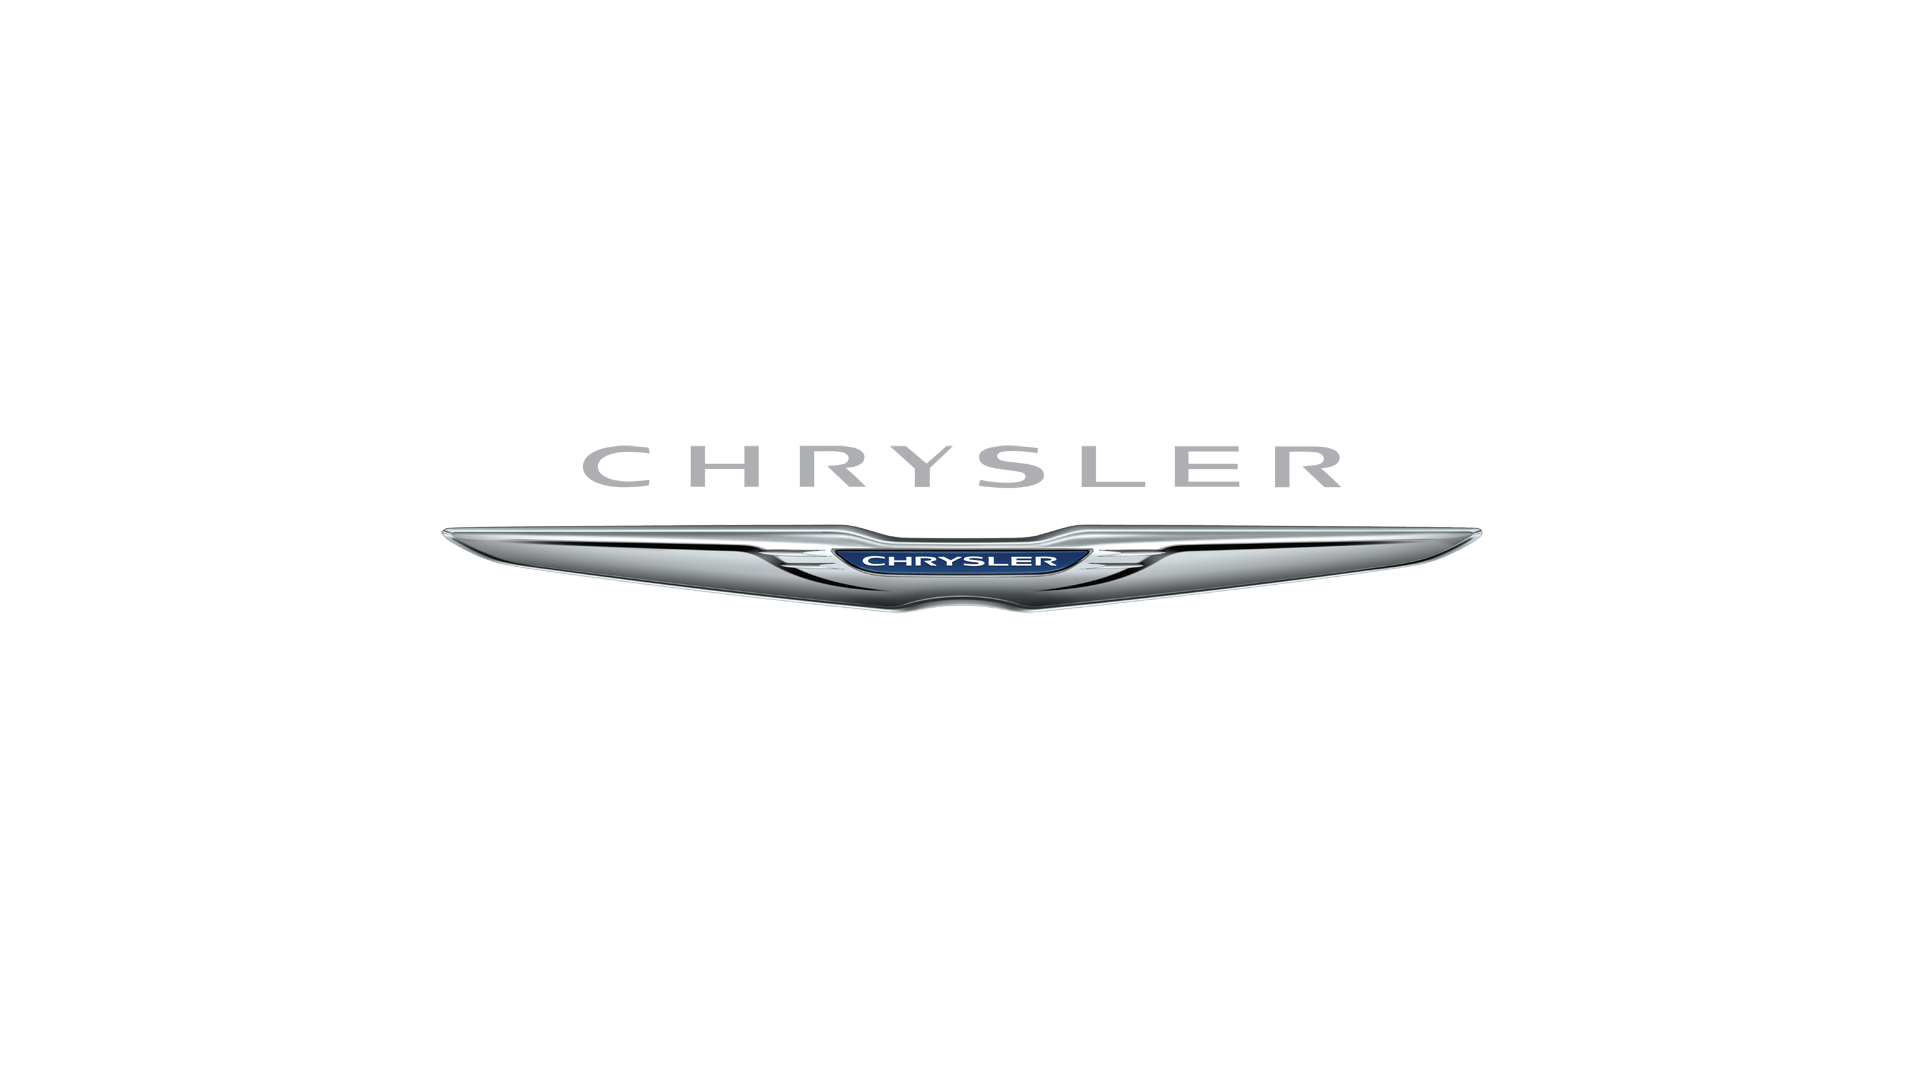 Car Logo Chrysler Transparent Png - Pluspng - Chrysler Logo PNG